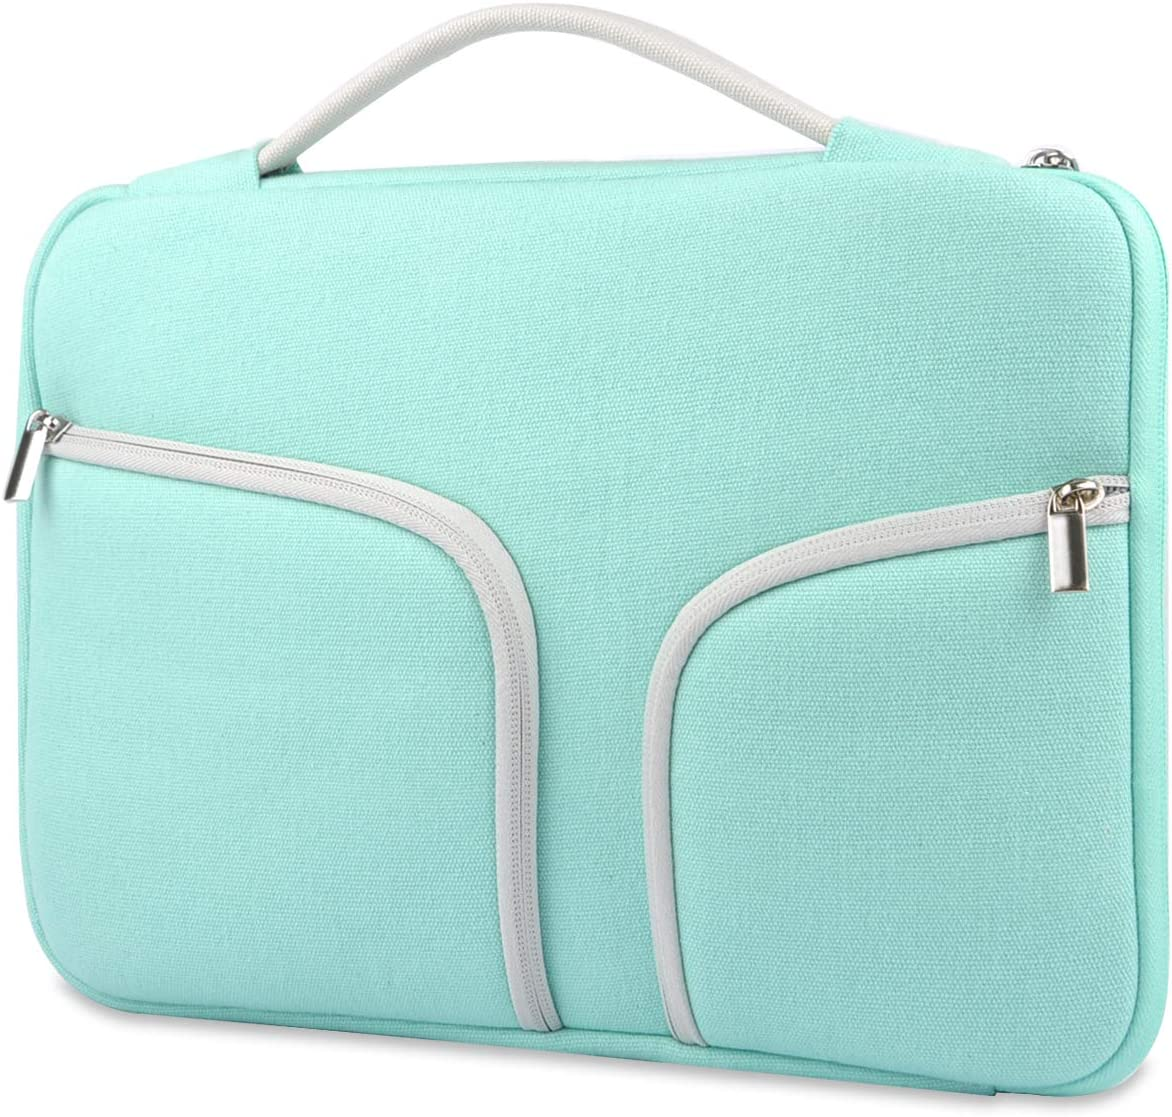 HESTECH Chromebook Case,11.6-12.5 inch Canvas Laptop Sleeve Bag Handle Front Pockets Compatible with Acer ASUS Dell HP Lenovo Thinkpad Yoga Samsung Toshiba MacBook air Microsoft Surface,Green